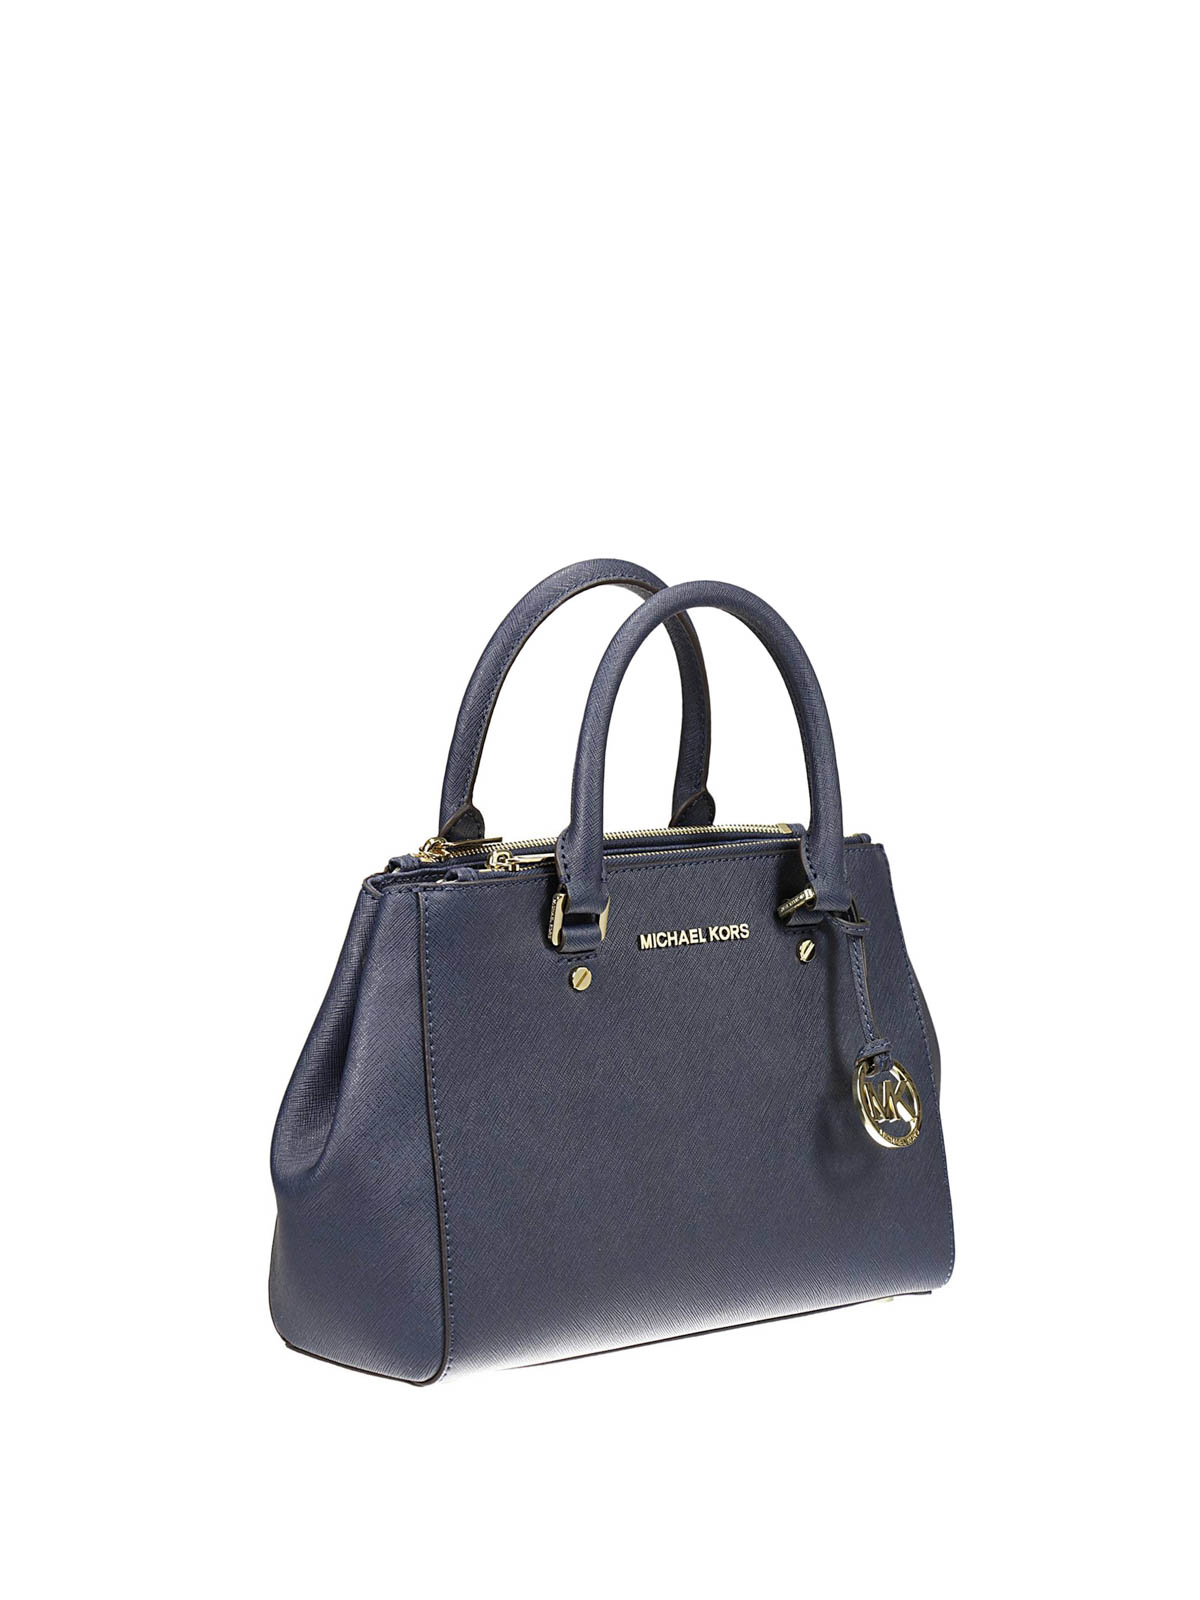 a81592616993 Michael Michael Kors  totes bags online - Sutton small Saffiano tote